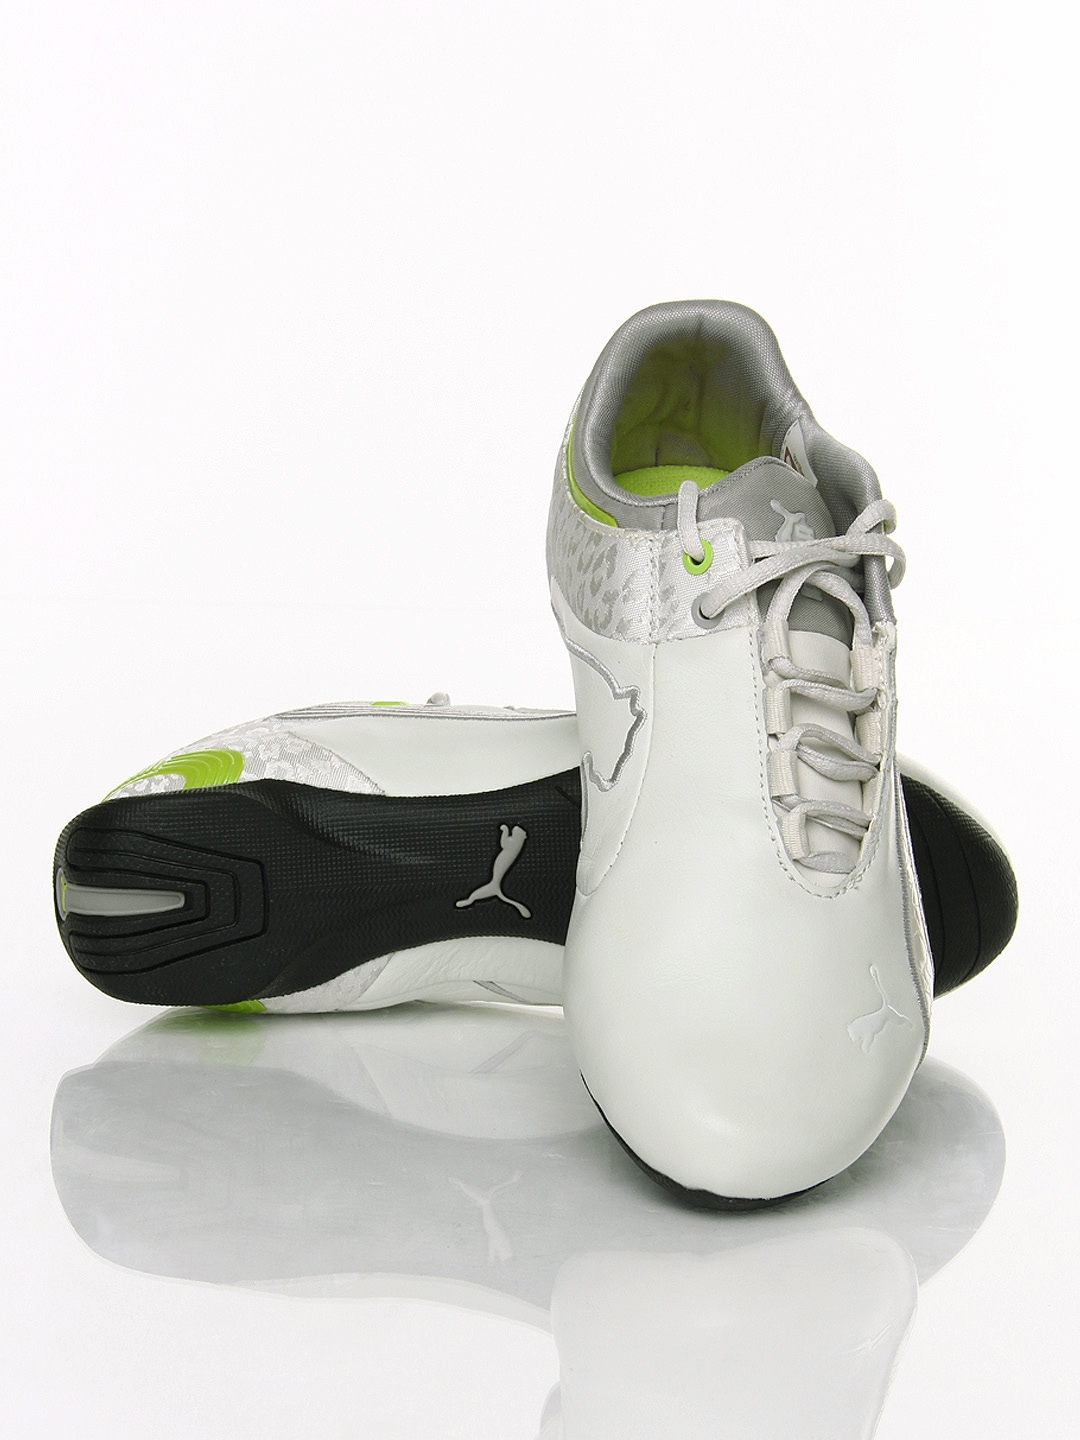 Buy Puma Women White Future Cat M2 NM Casual Shoes 1404458 for women online  in india on Myntra at Yebhi.com 018887986